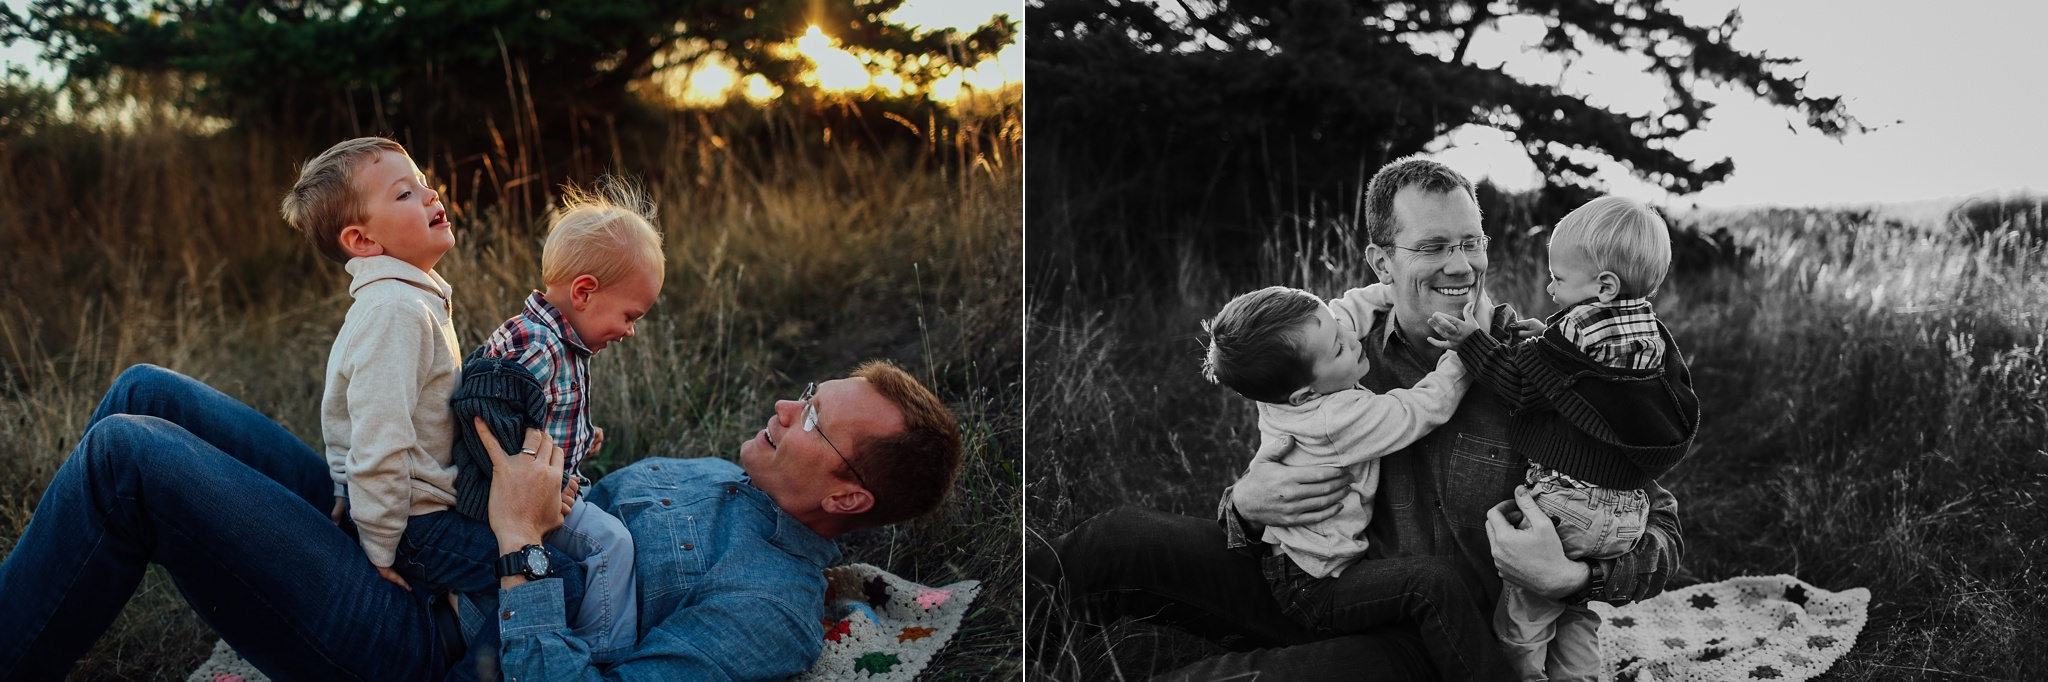 Whidbey-Island-Family-Photographer-Kara-Chappell-Photography_1070.jpg